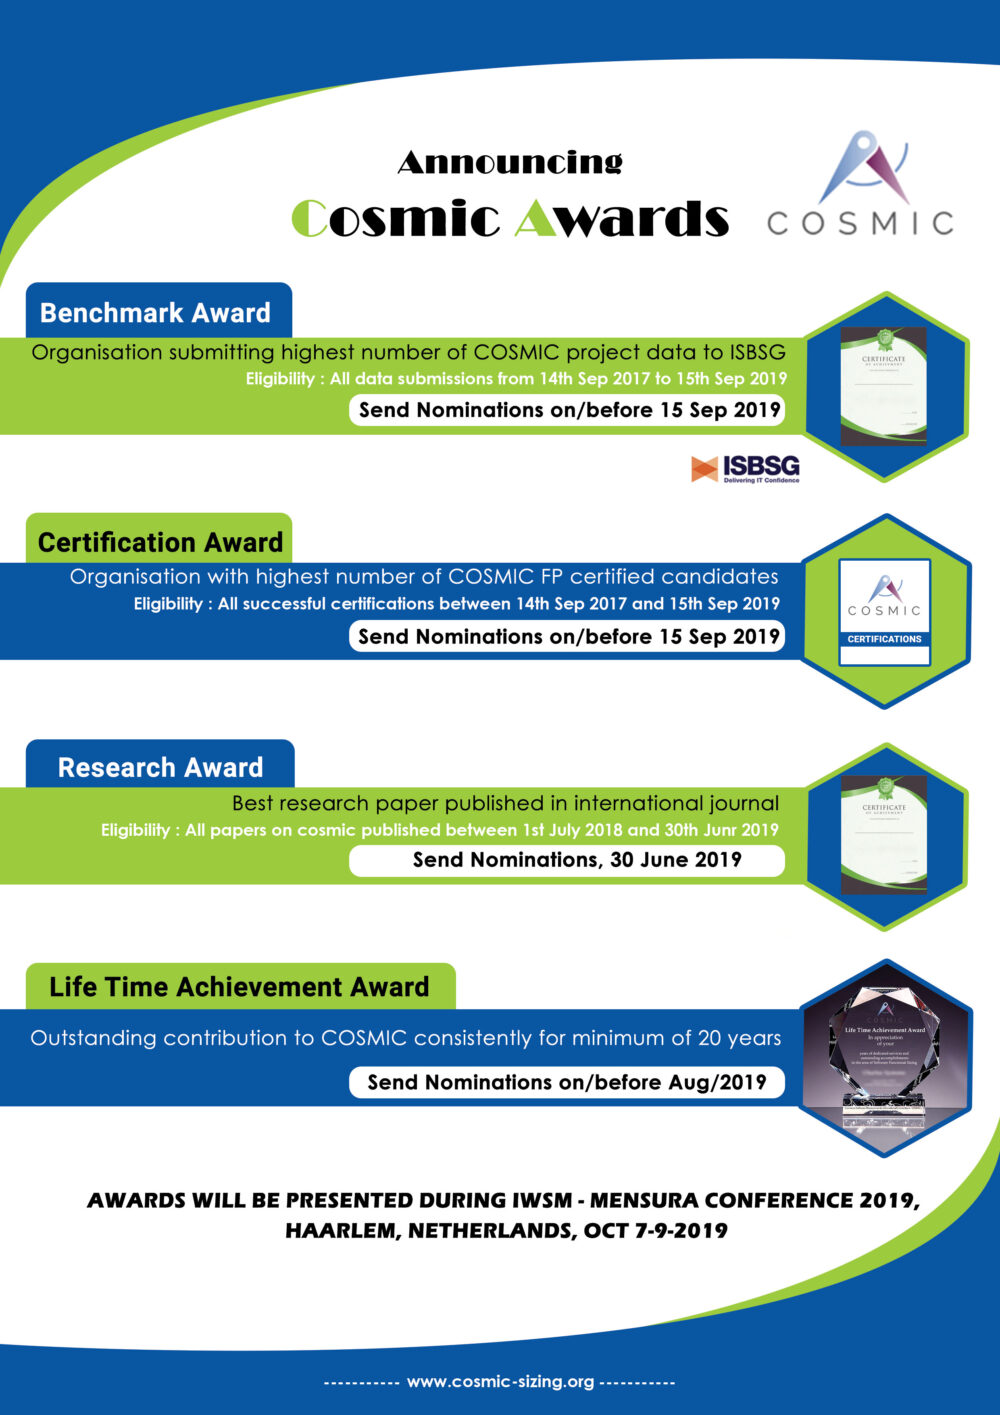 COSMIC Awards for benchmark, certification and research